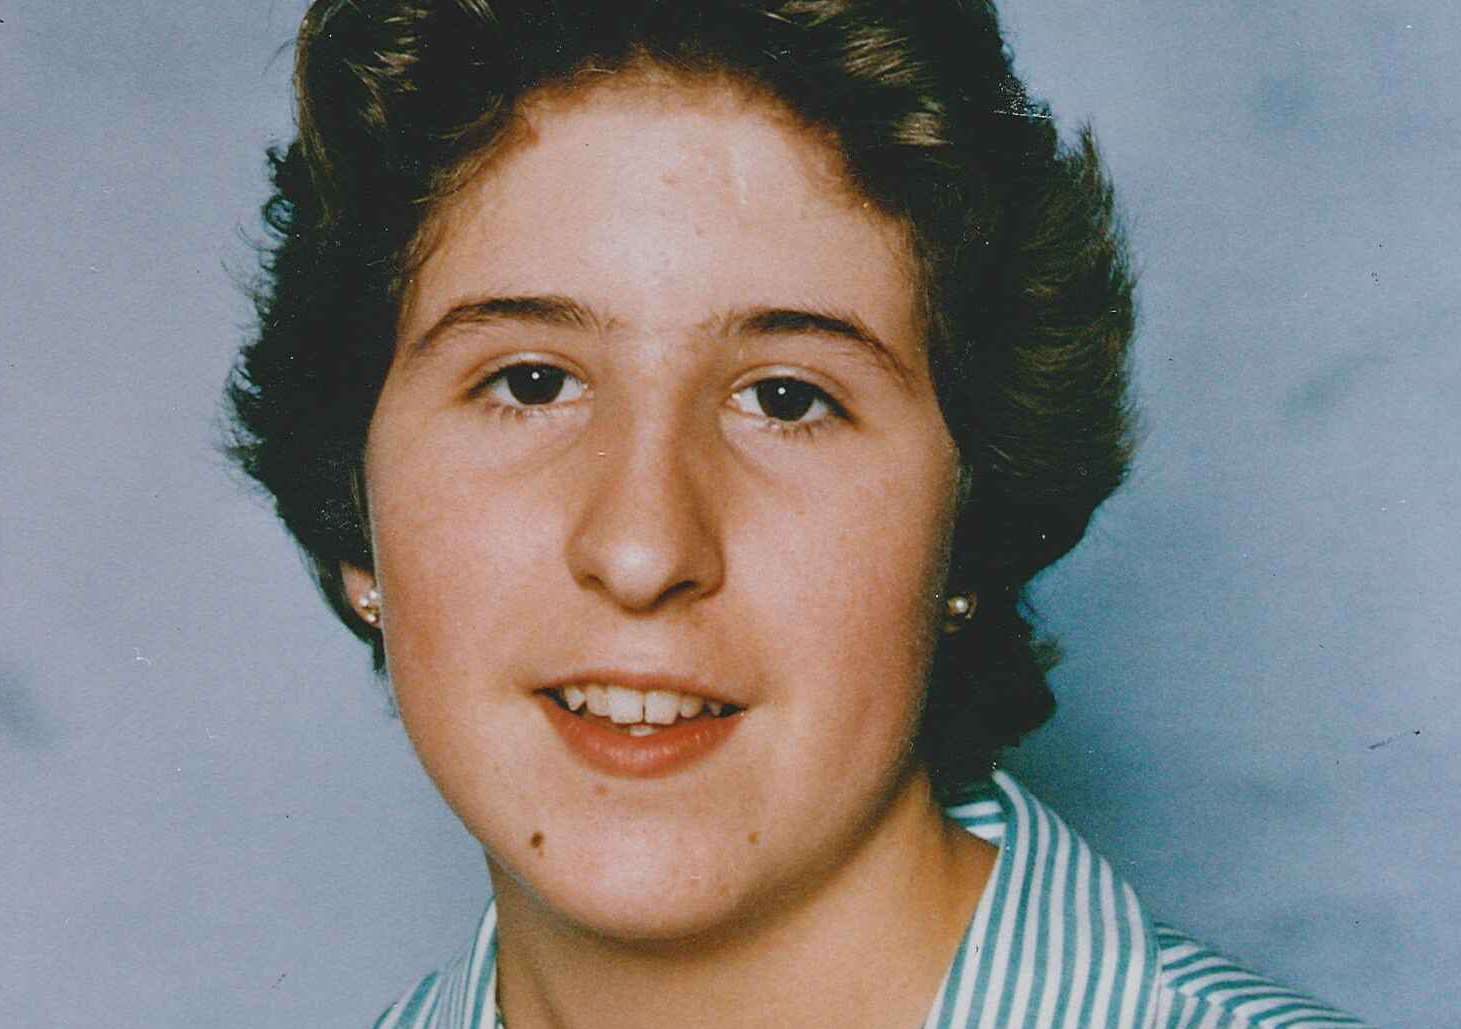 Claire Tiltman was stabbed to death in 1993